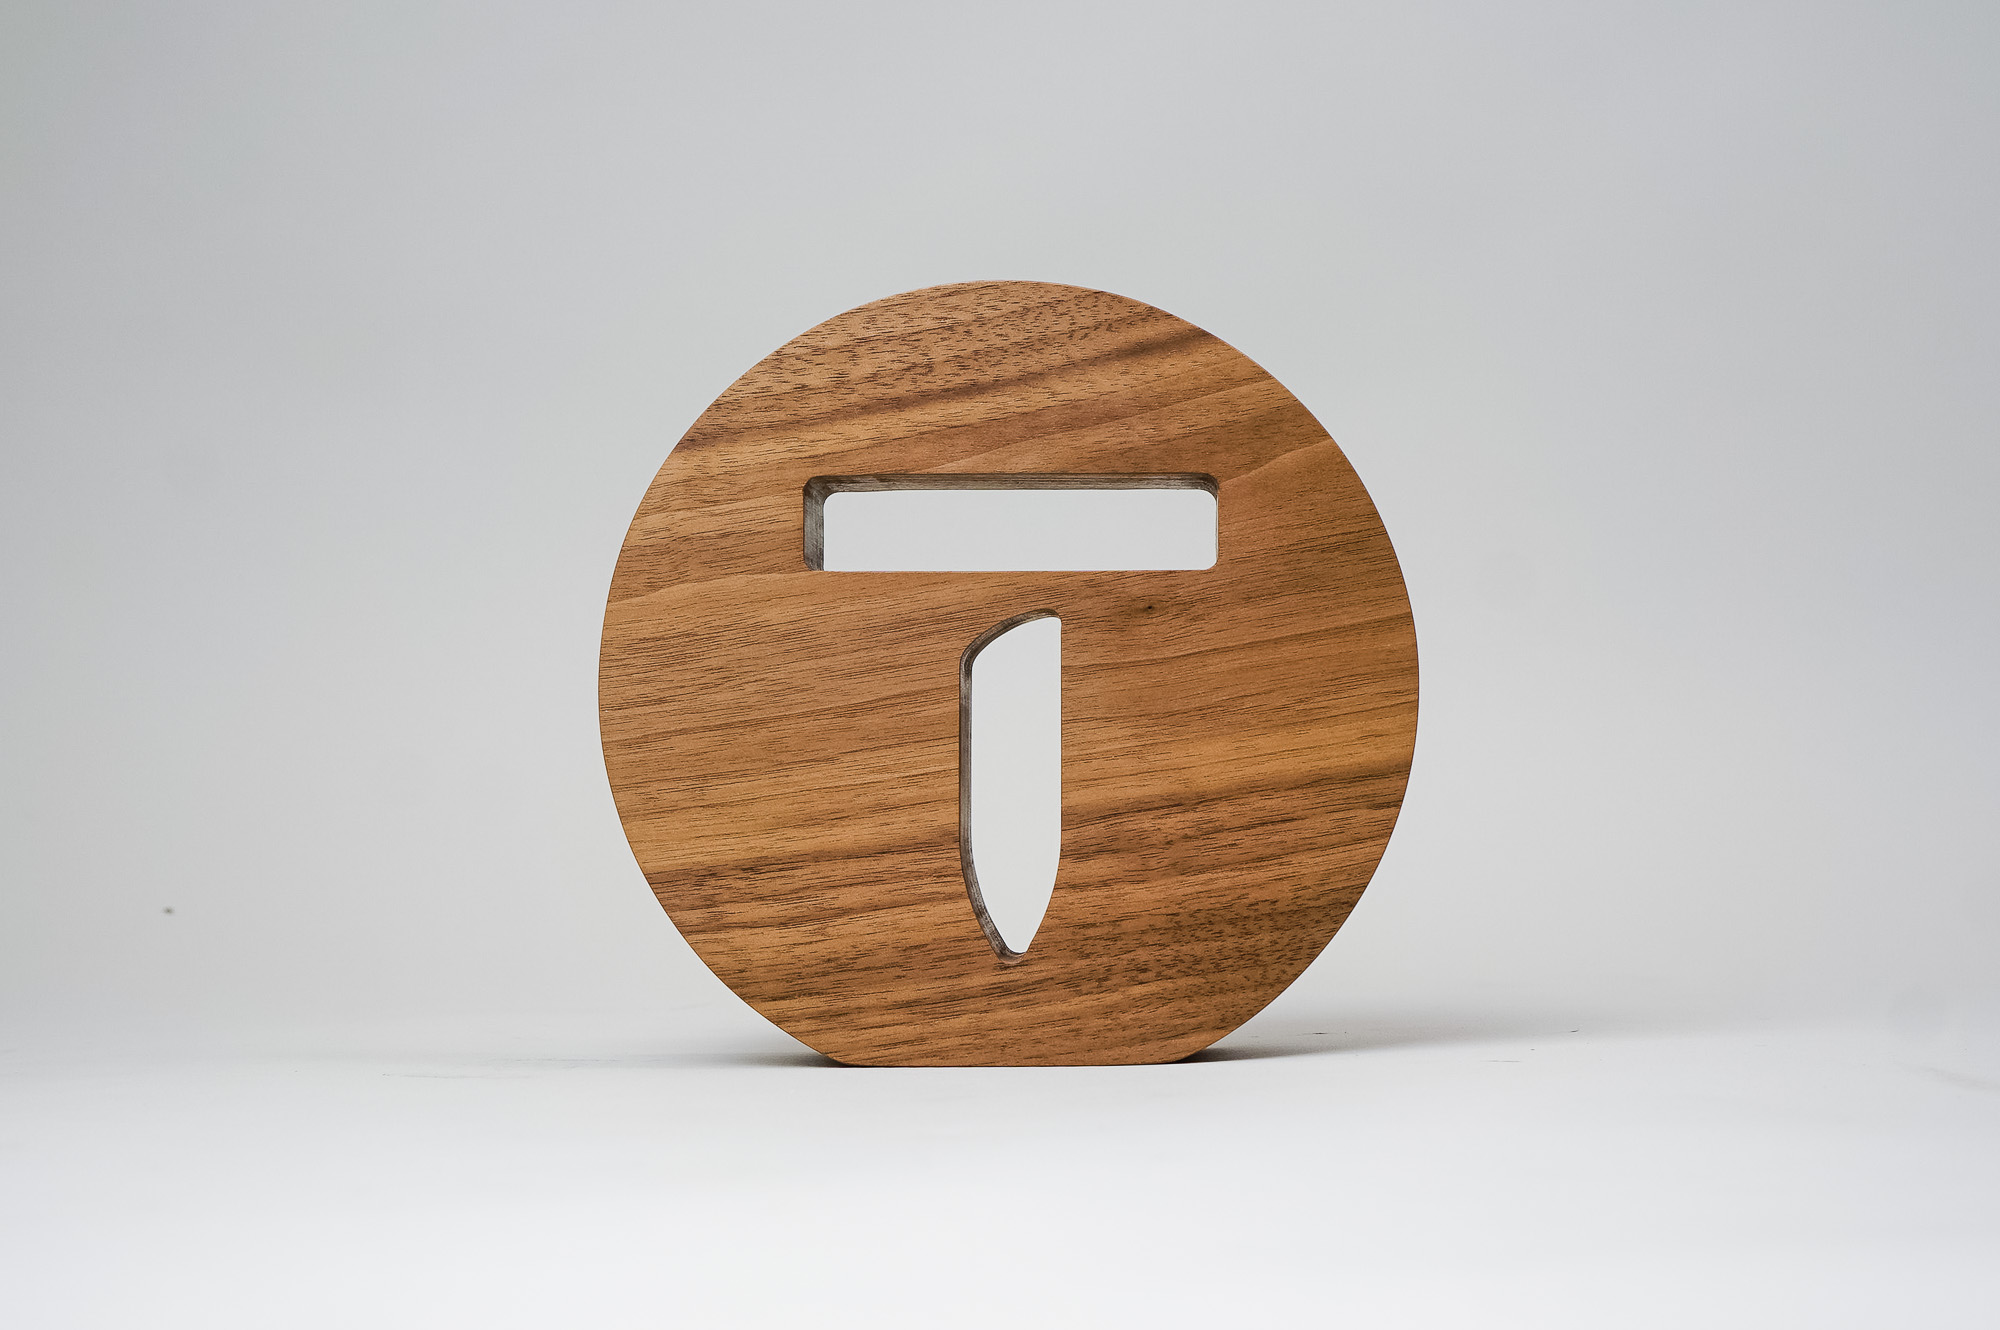 Solid walnut tabletop sign for Thumbtack, a San Francisco based online service that matches customers with local professionals